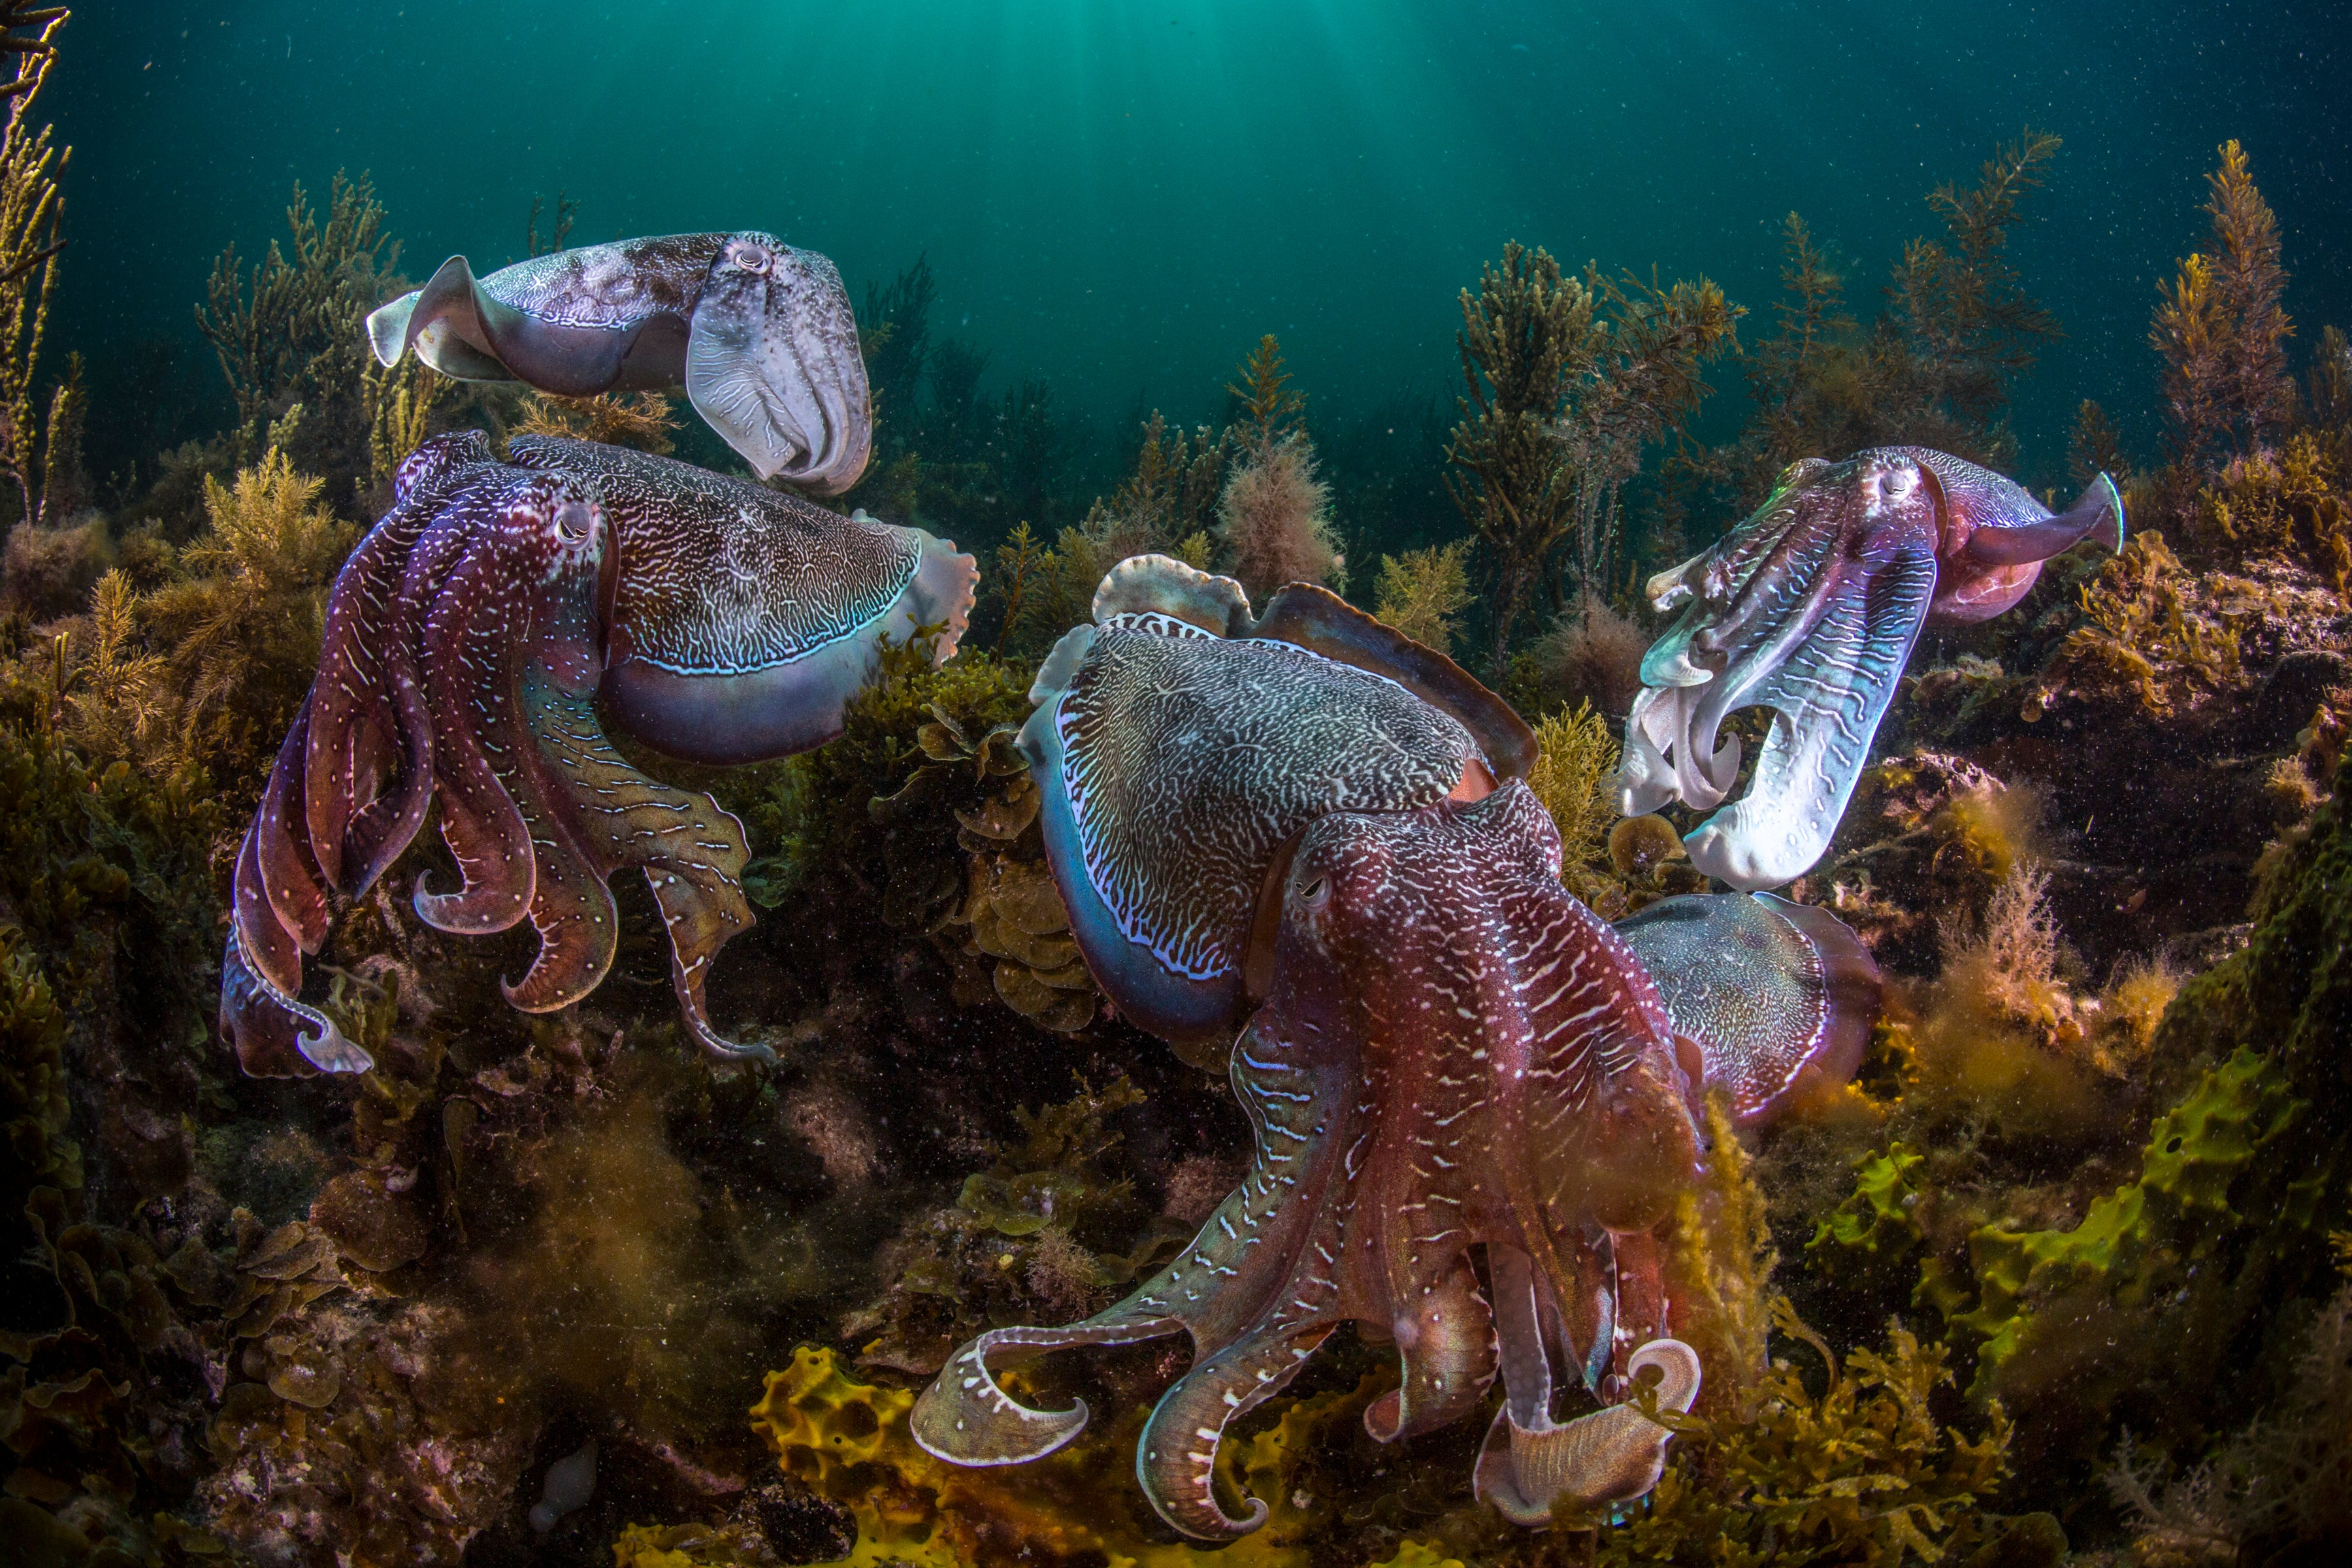 Swarms Of Octopus Are Taking Over The Oceans